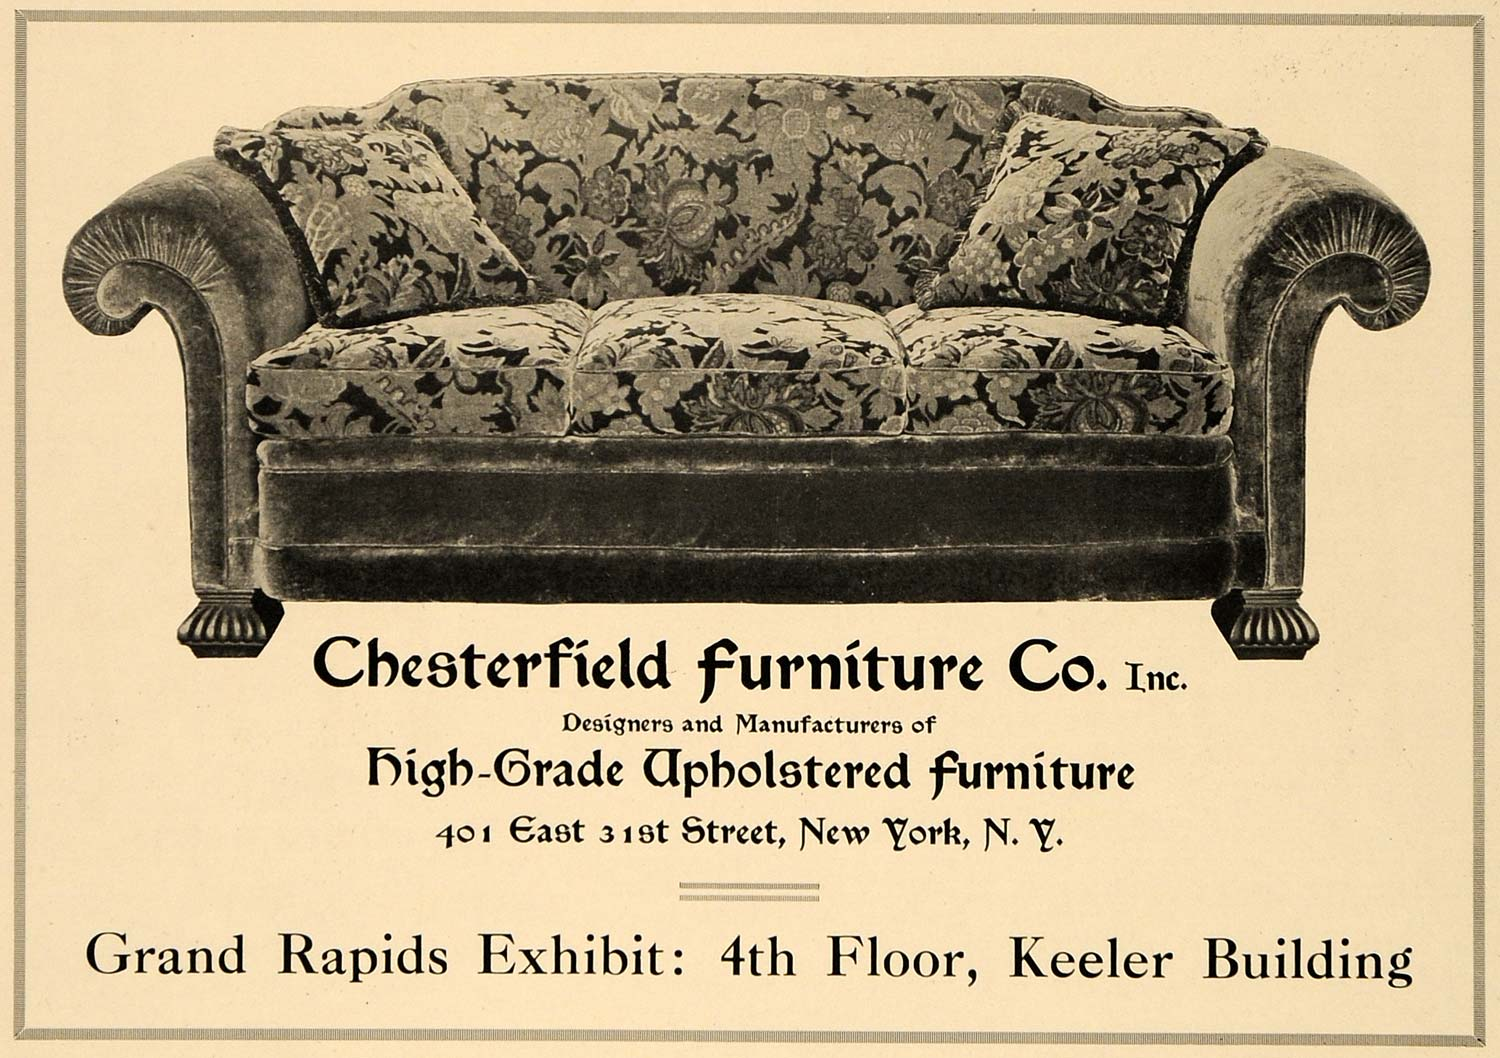 Tremendous 1919 Ad Chesterfield Furniture Co Upholstered Sofa Original Advertising Gf2 Unemploymentrelief Wooden Chair Designs For Living Room Unemploymentrelieforg